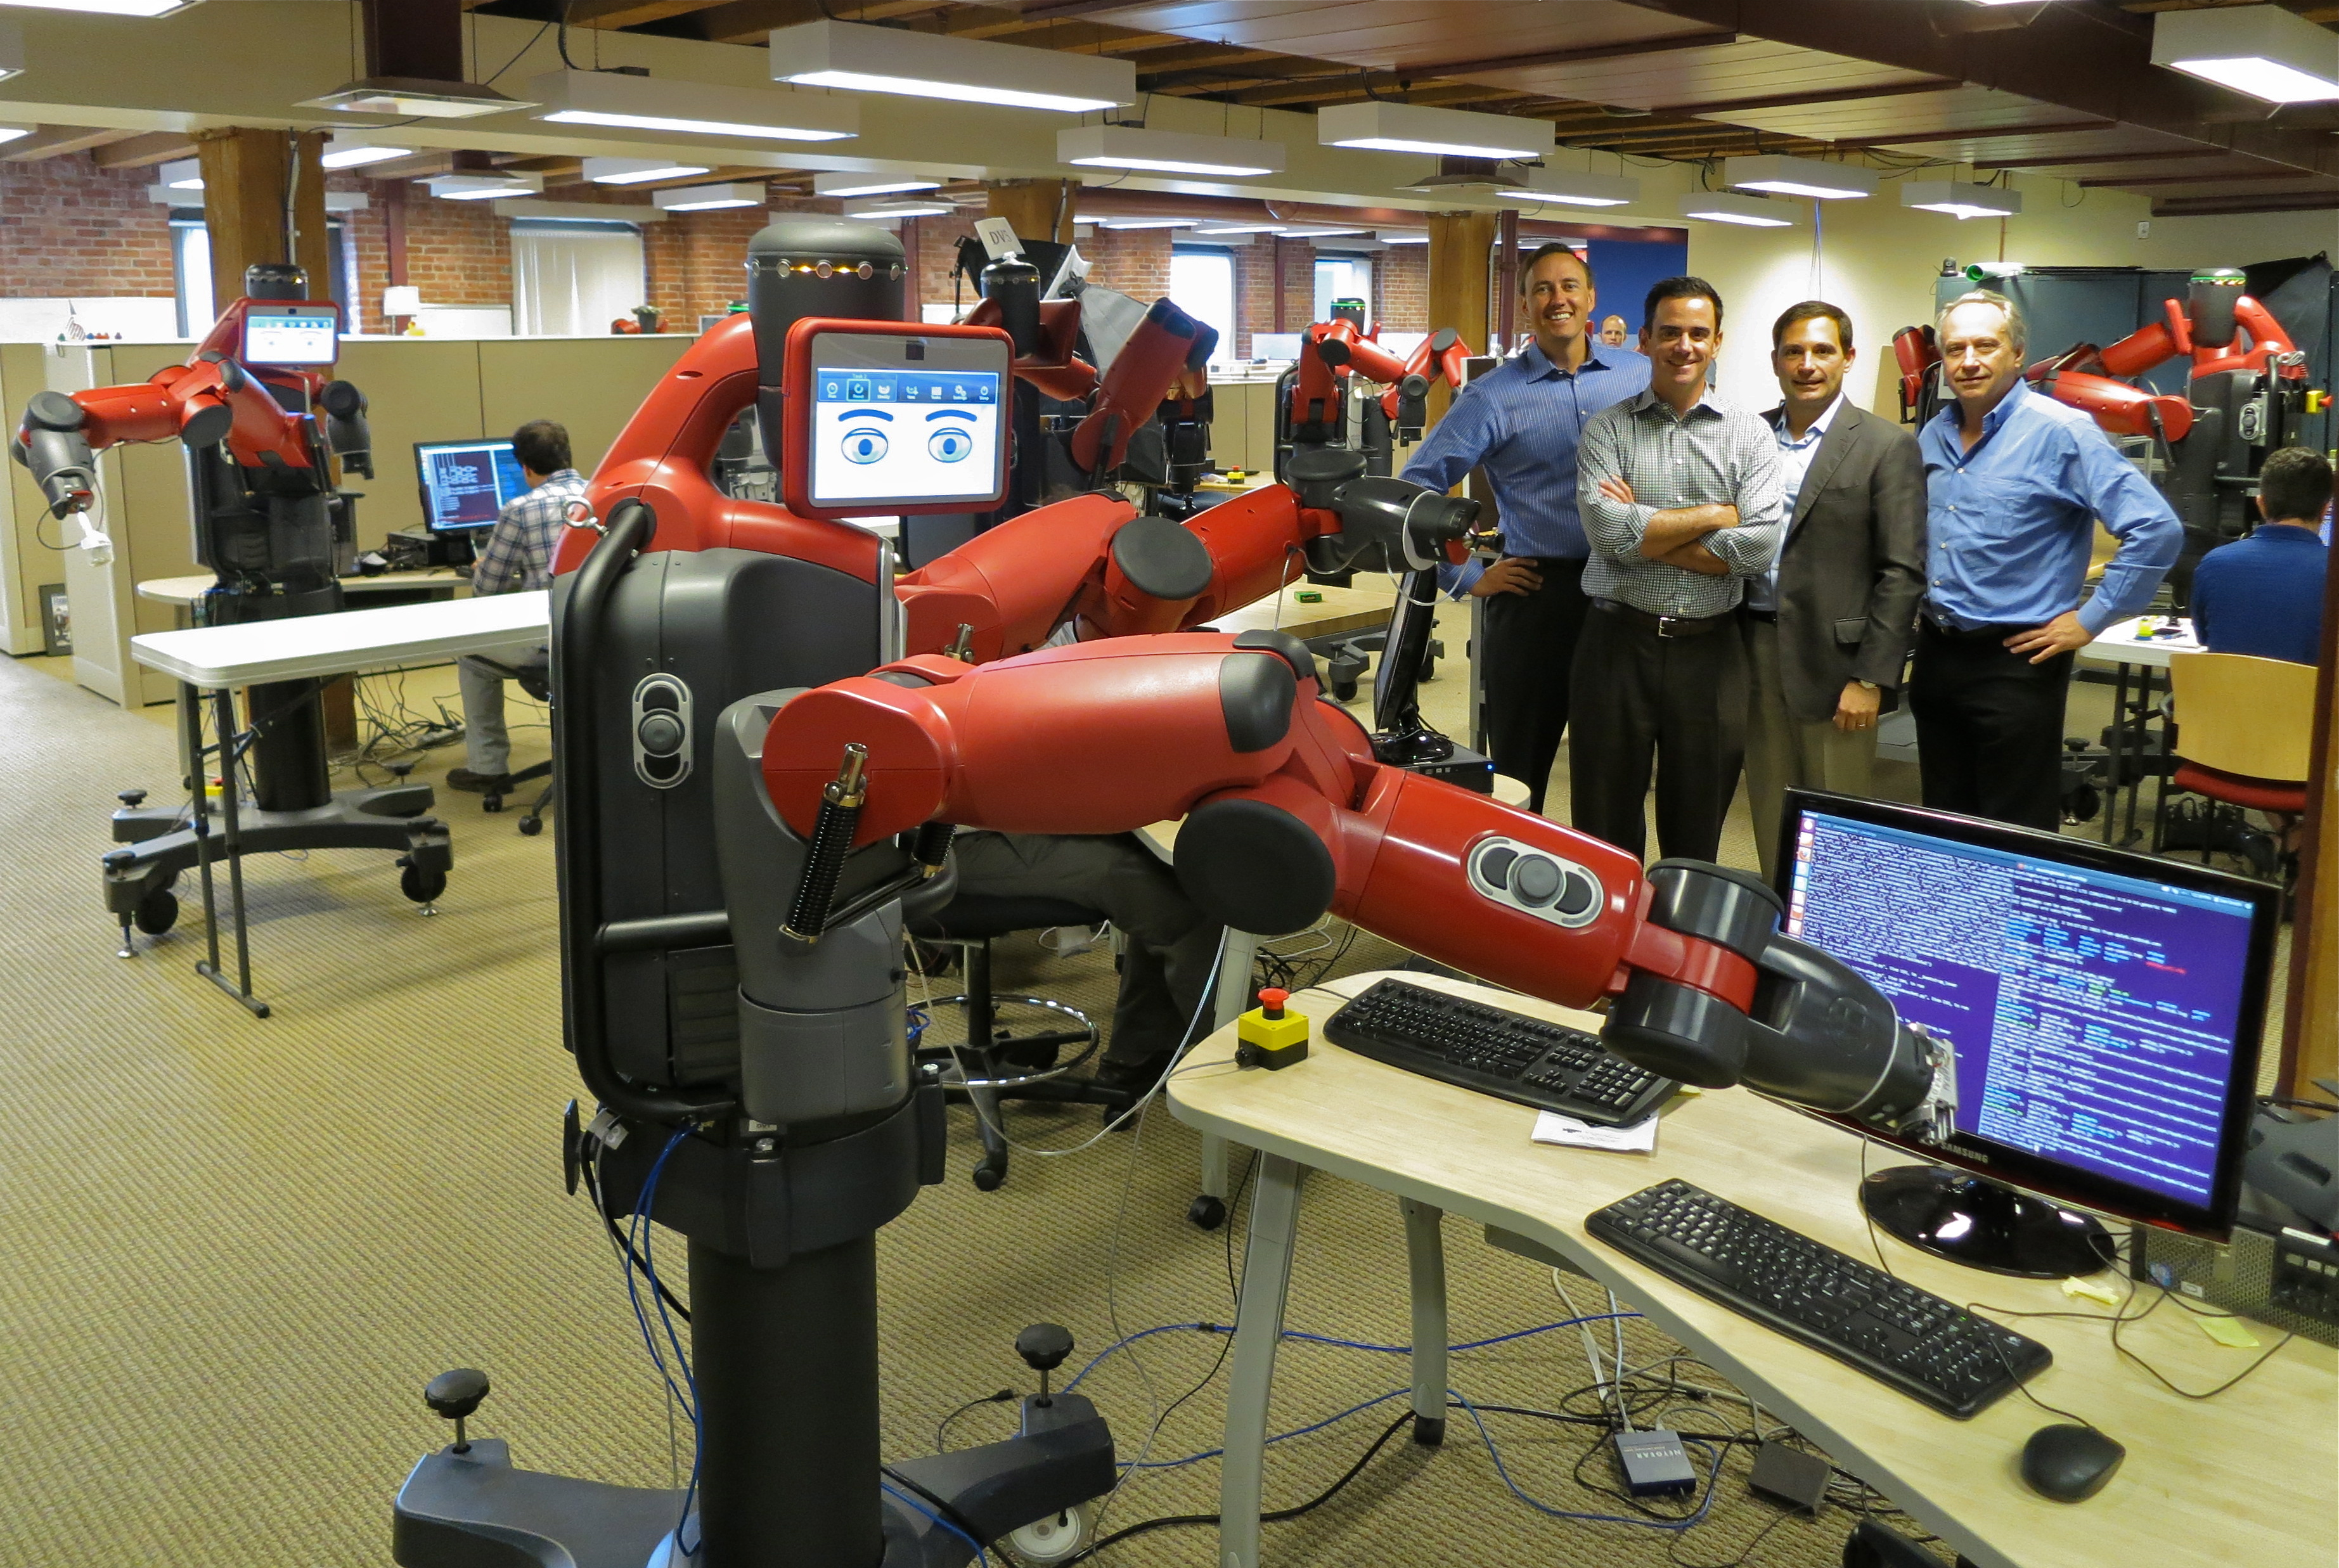 The rise in robotics: Its time for a shift in debate